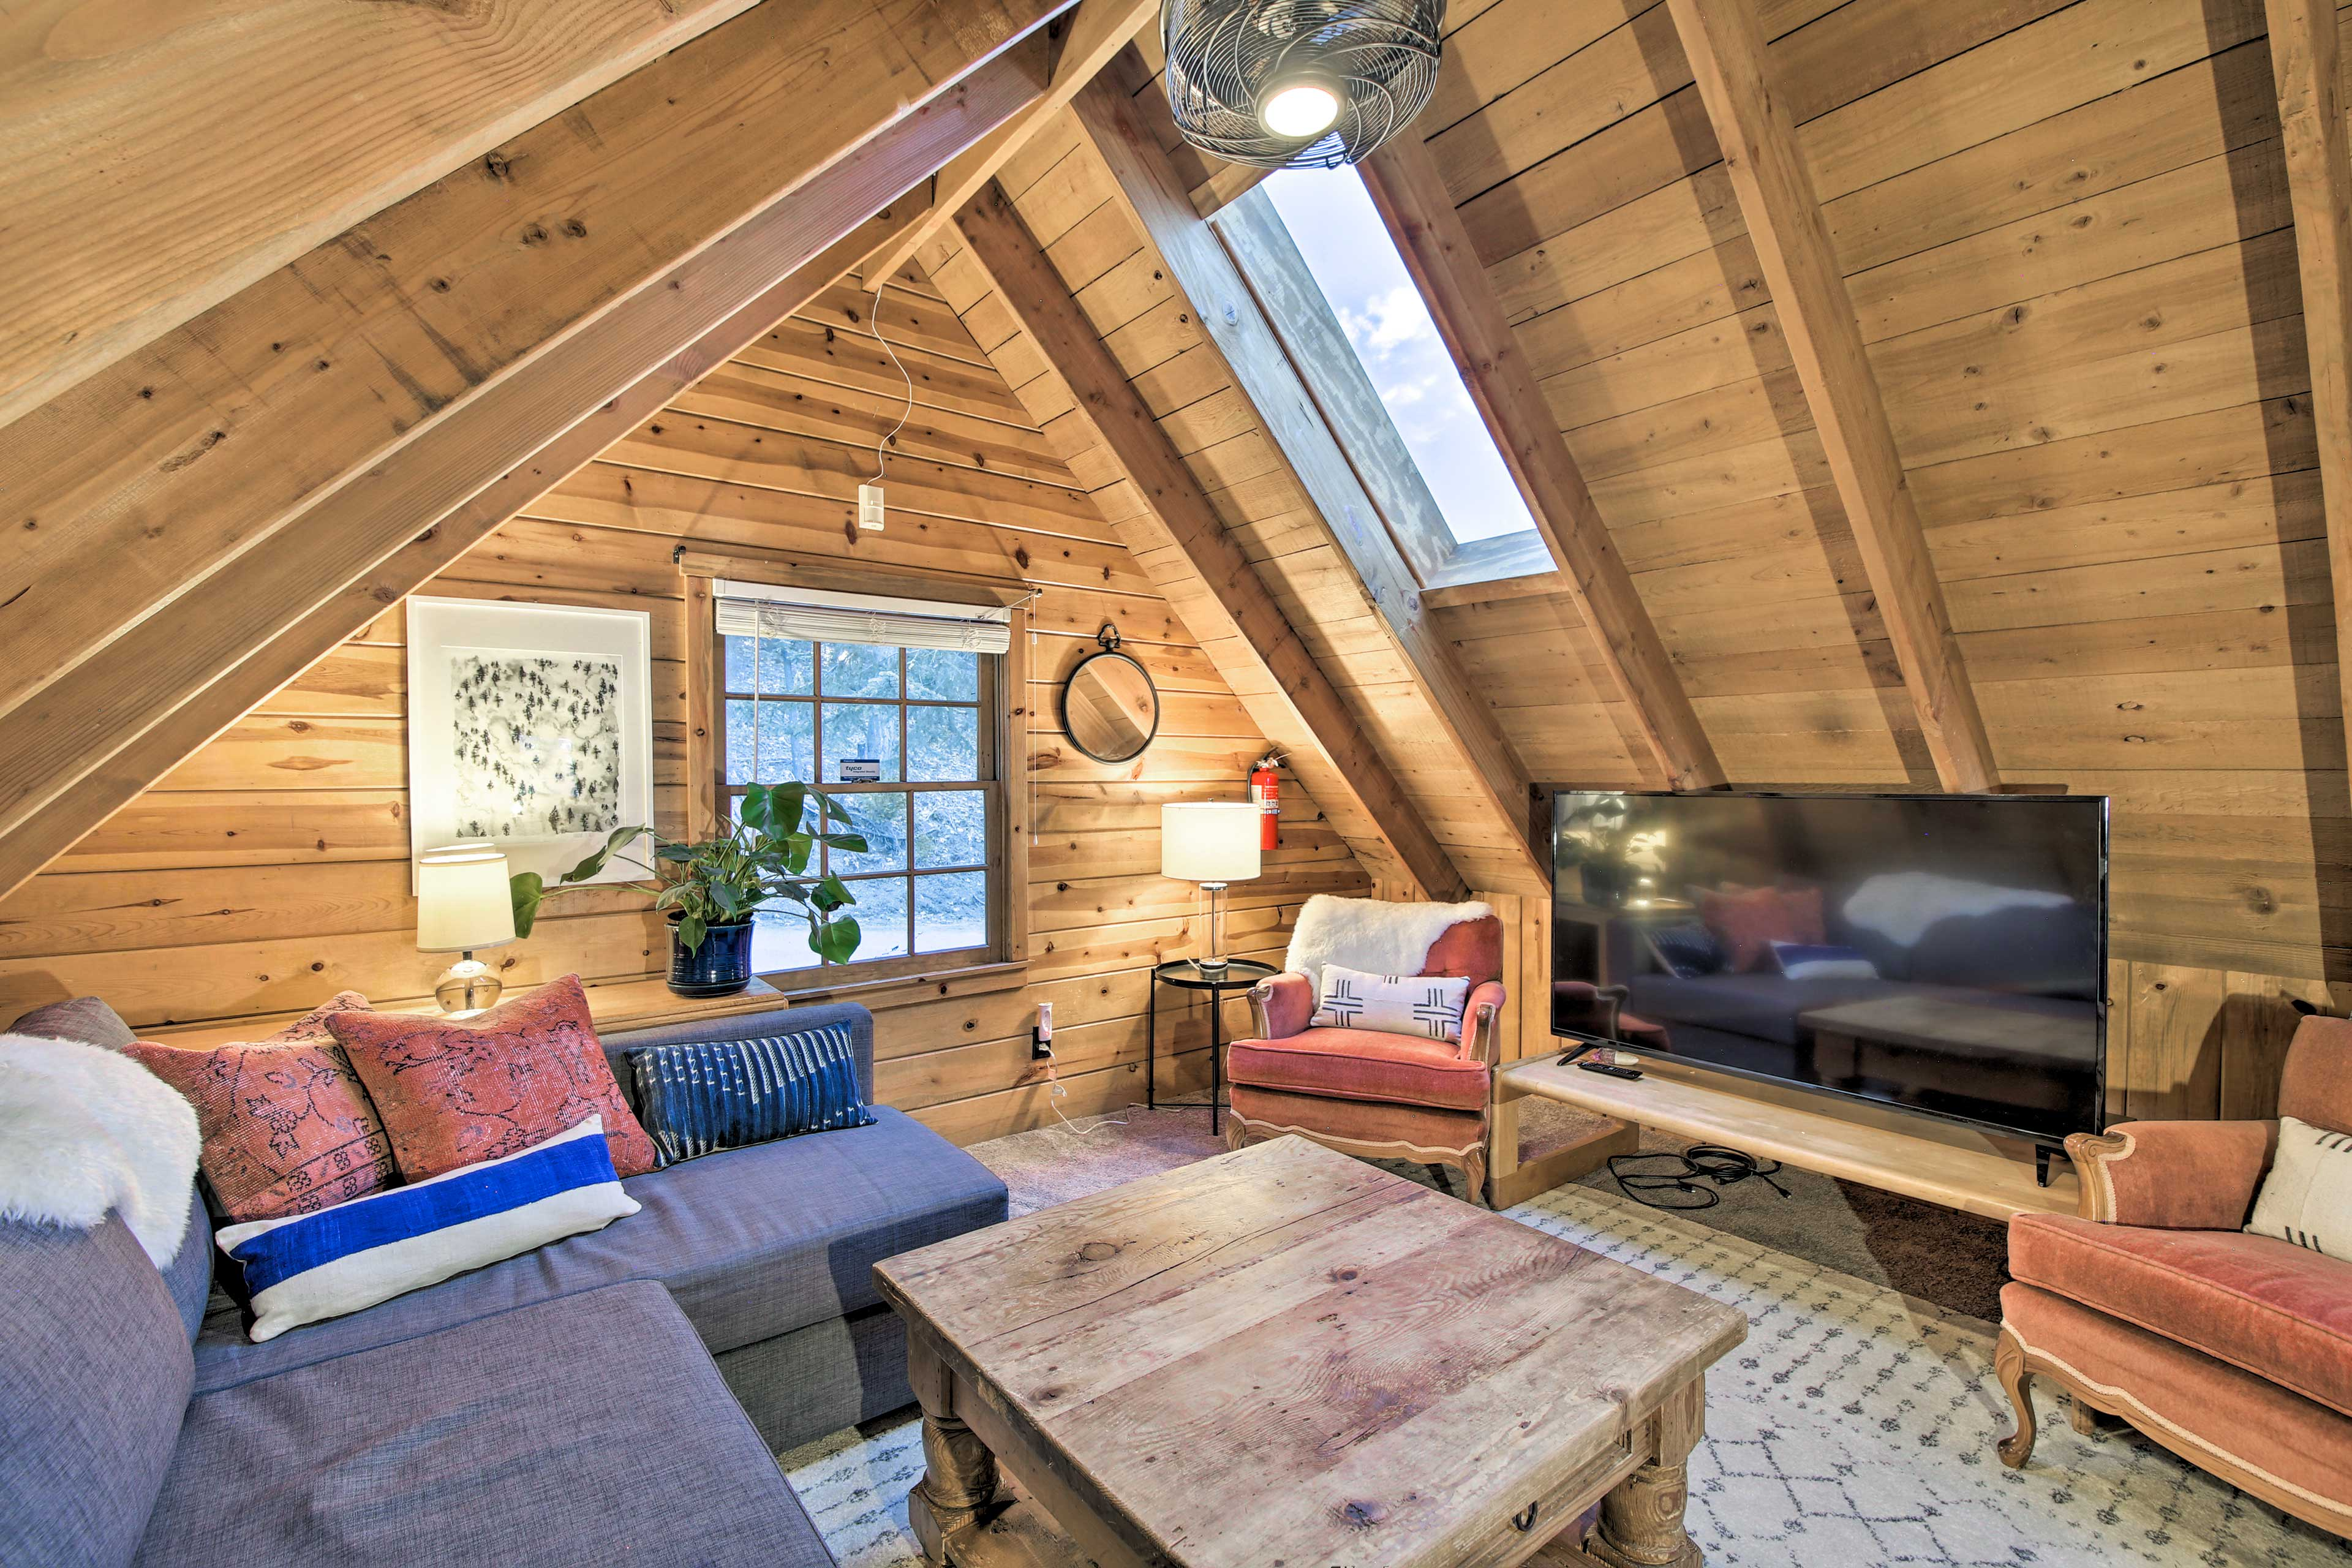 Relax in the loft area in front of the large Smart TV.